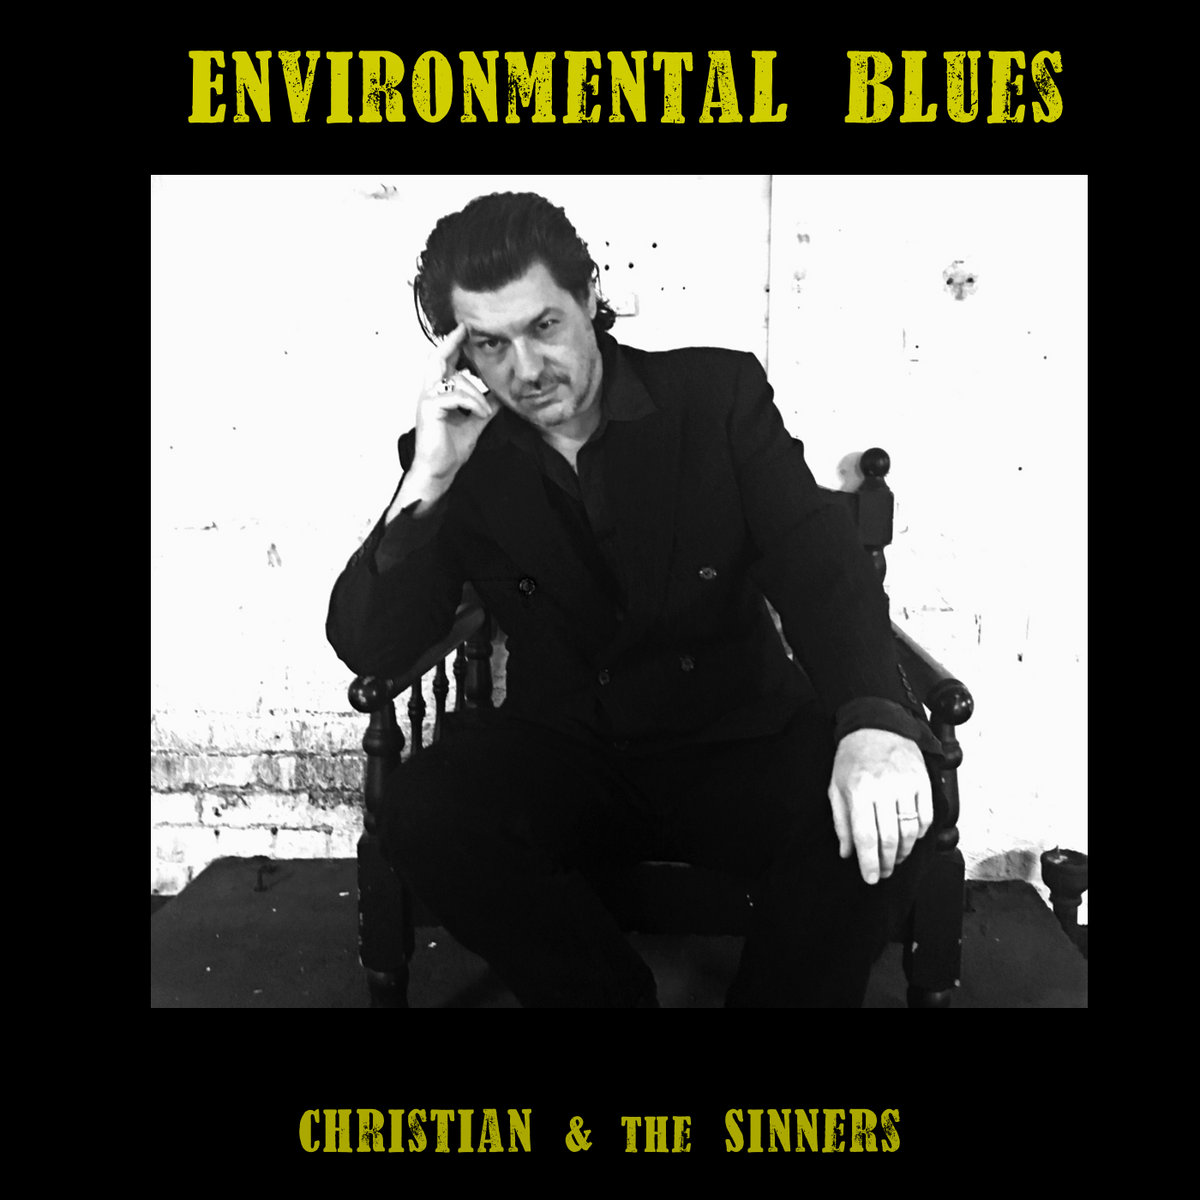 Environmental Blues by Christian & the Sinners